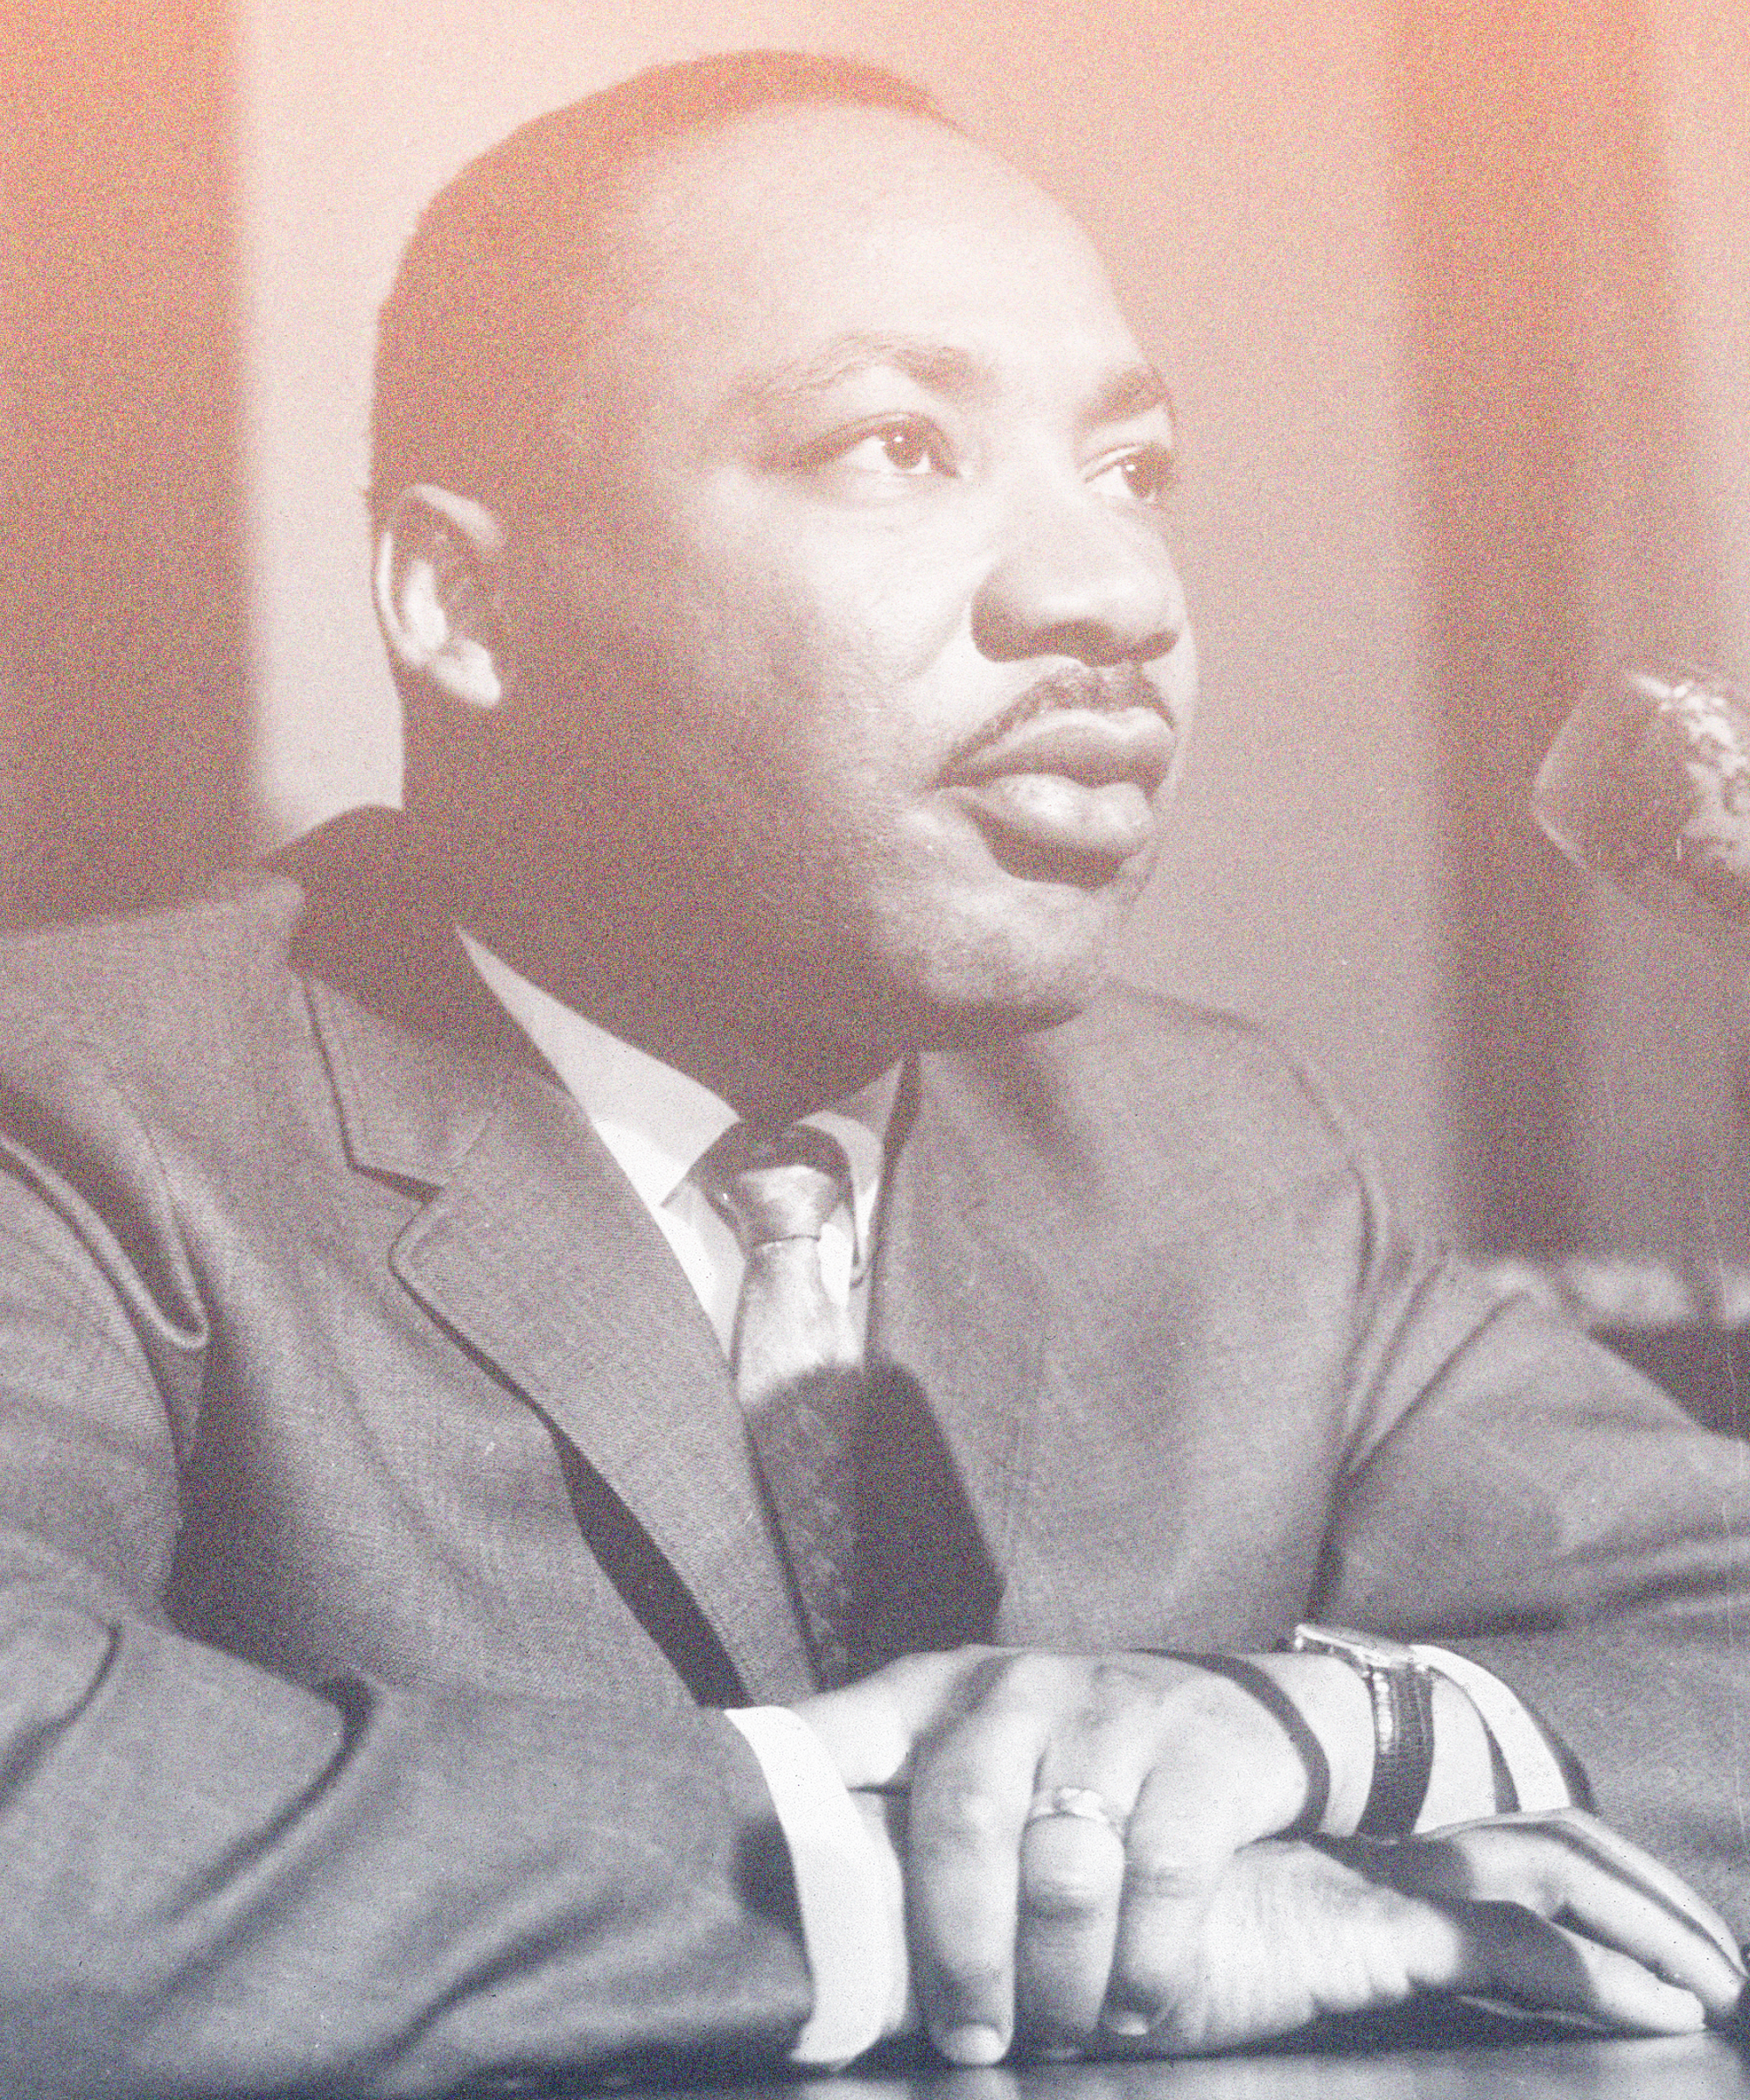 Civil_Rights_Leaders_Quotes_for_MLK_Day_opener